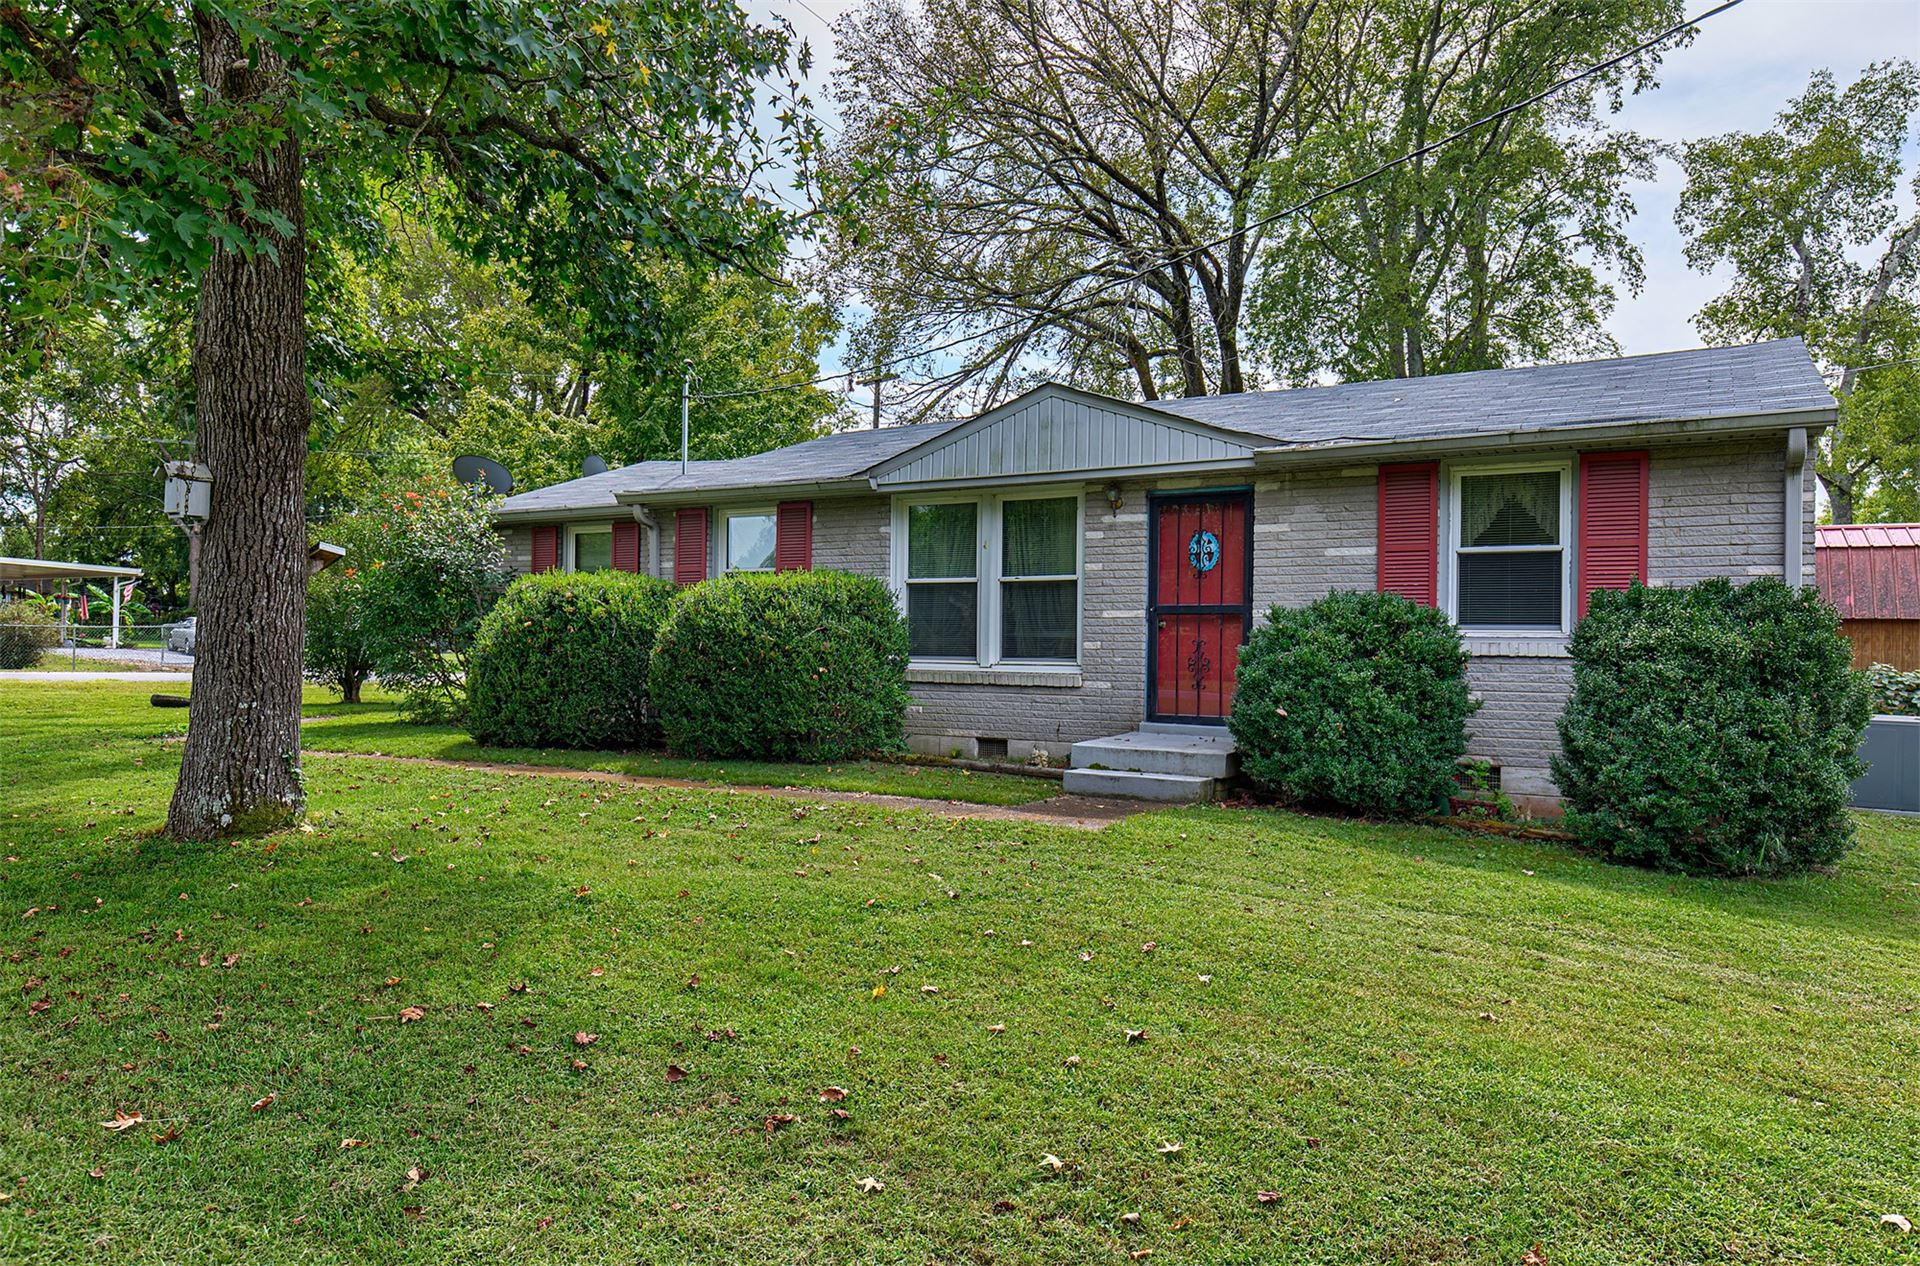 701 Swinging Bridge Rd, Old Hickory, TN 37138 - MLS#: 2198170